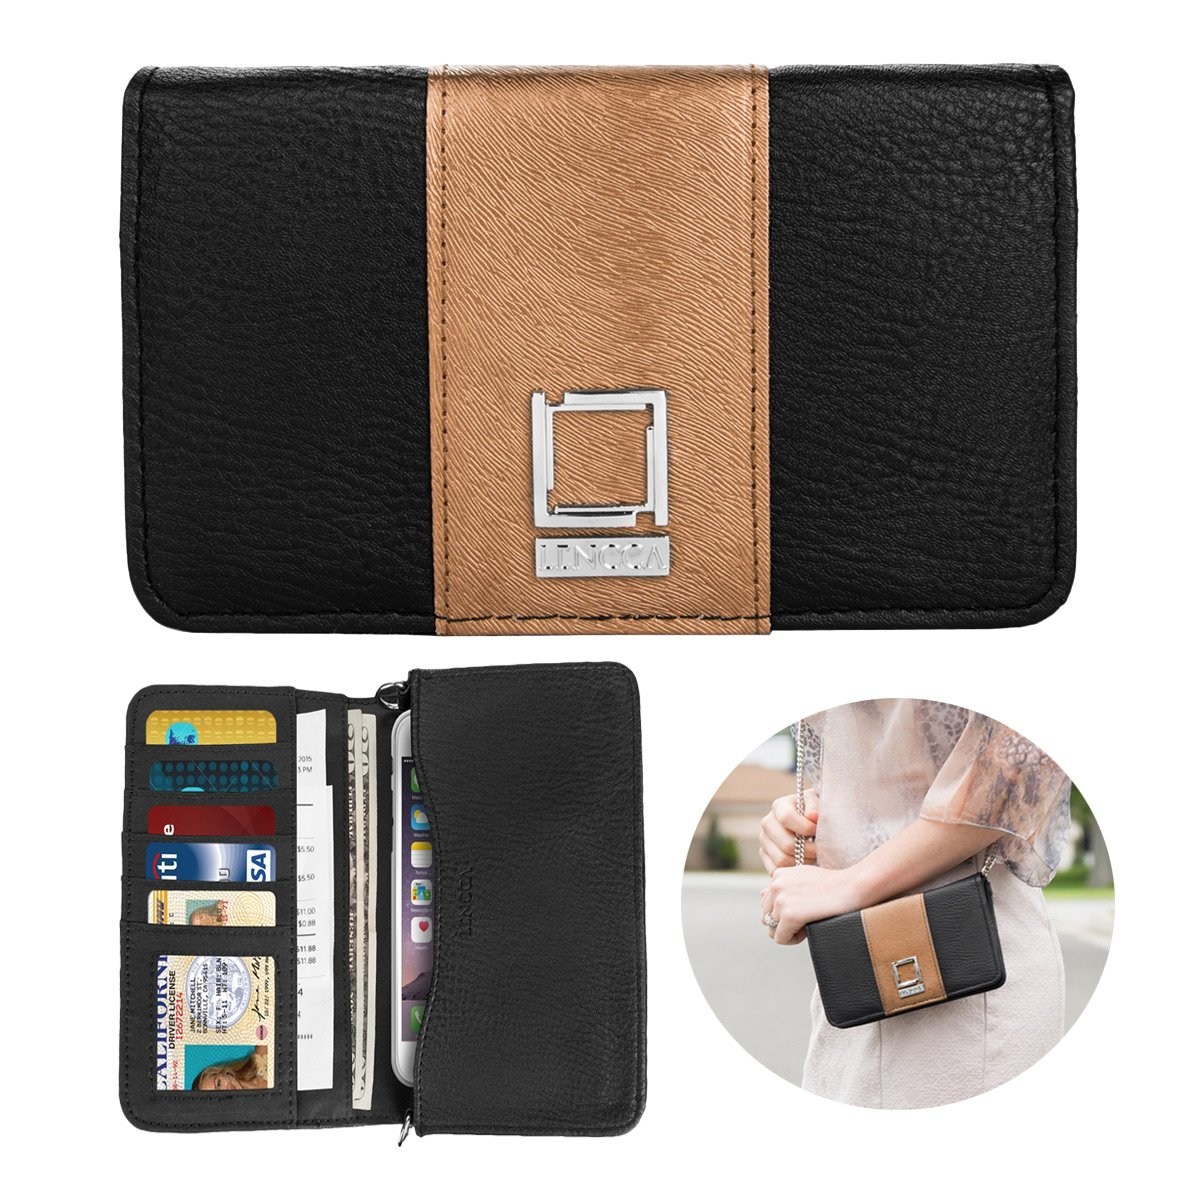 BlackCopper Roxie Womens Leather Crossbody Cell Phone Purse Clutch Wallet Handbag Organizer for iPhone Xs Max XS XR X 8 7 Plus 6s 6 5 SE Galaxy S9 S8 Plus S7 Note9 Note8